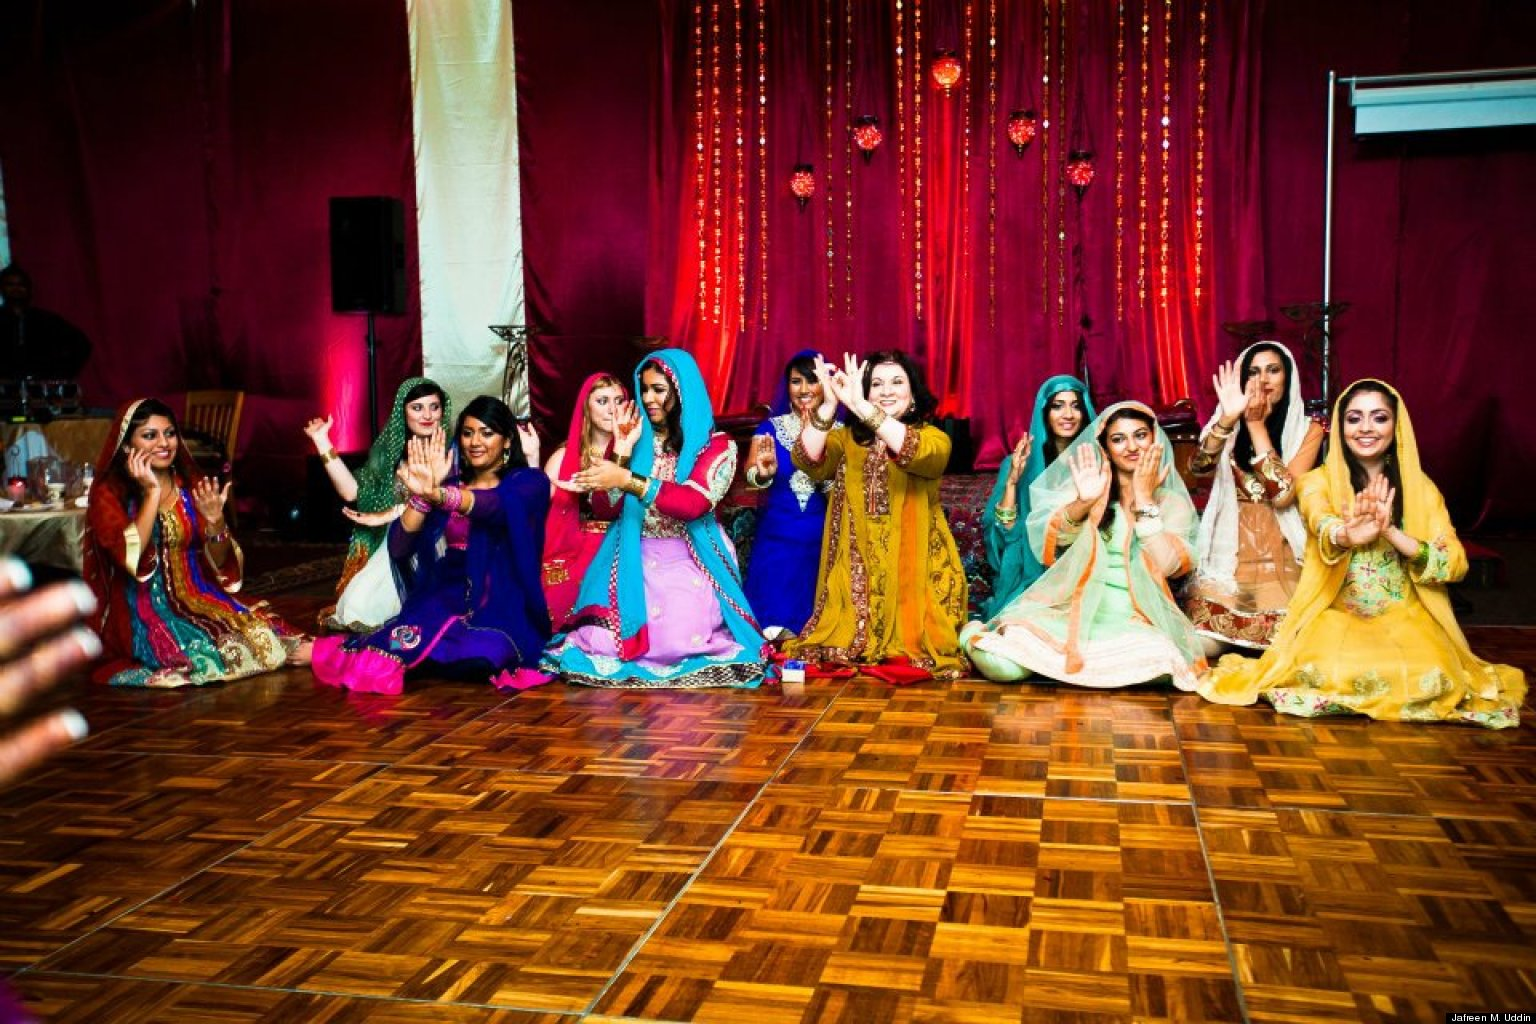 Mehndi Ceremony N Wedding : Mehndi ceremonies the world s first bridal shower huffpost